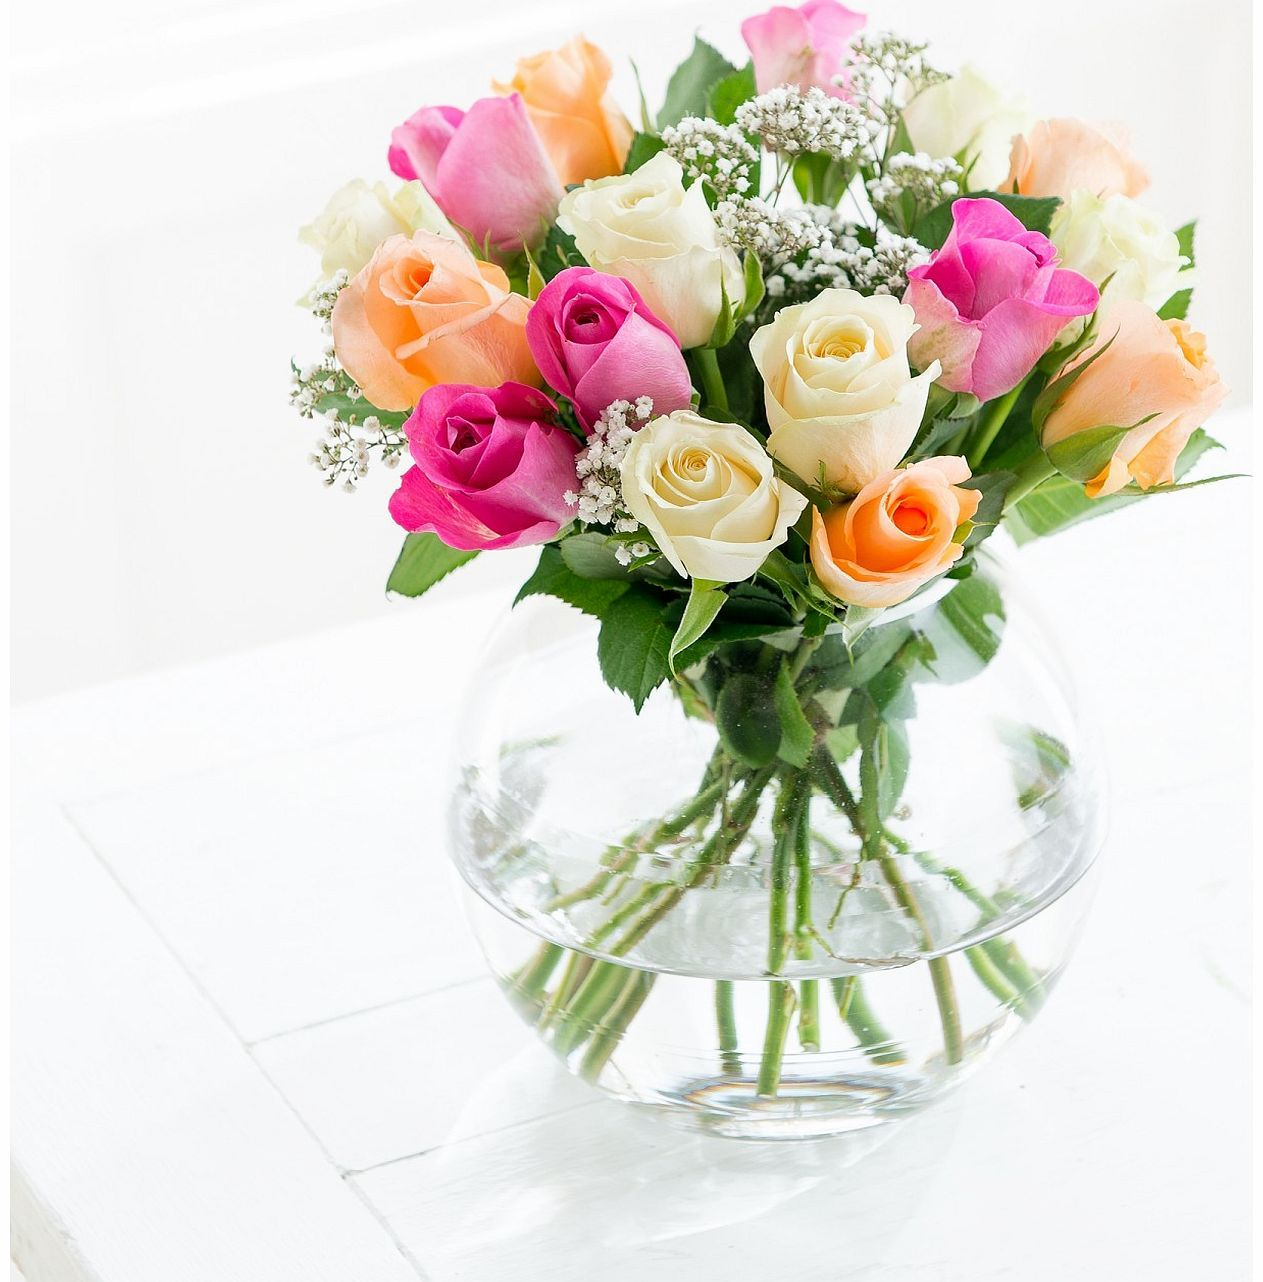 Flying flowers 15 mixed roses 5 white roses 5 peach roses 5 pink flying flowers 15 mixed roses 5 white roses 5 peach roses 5 pink roses izmirmasajfo Gallery